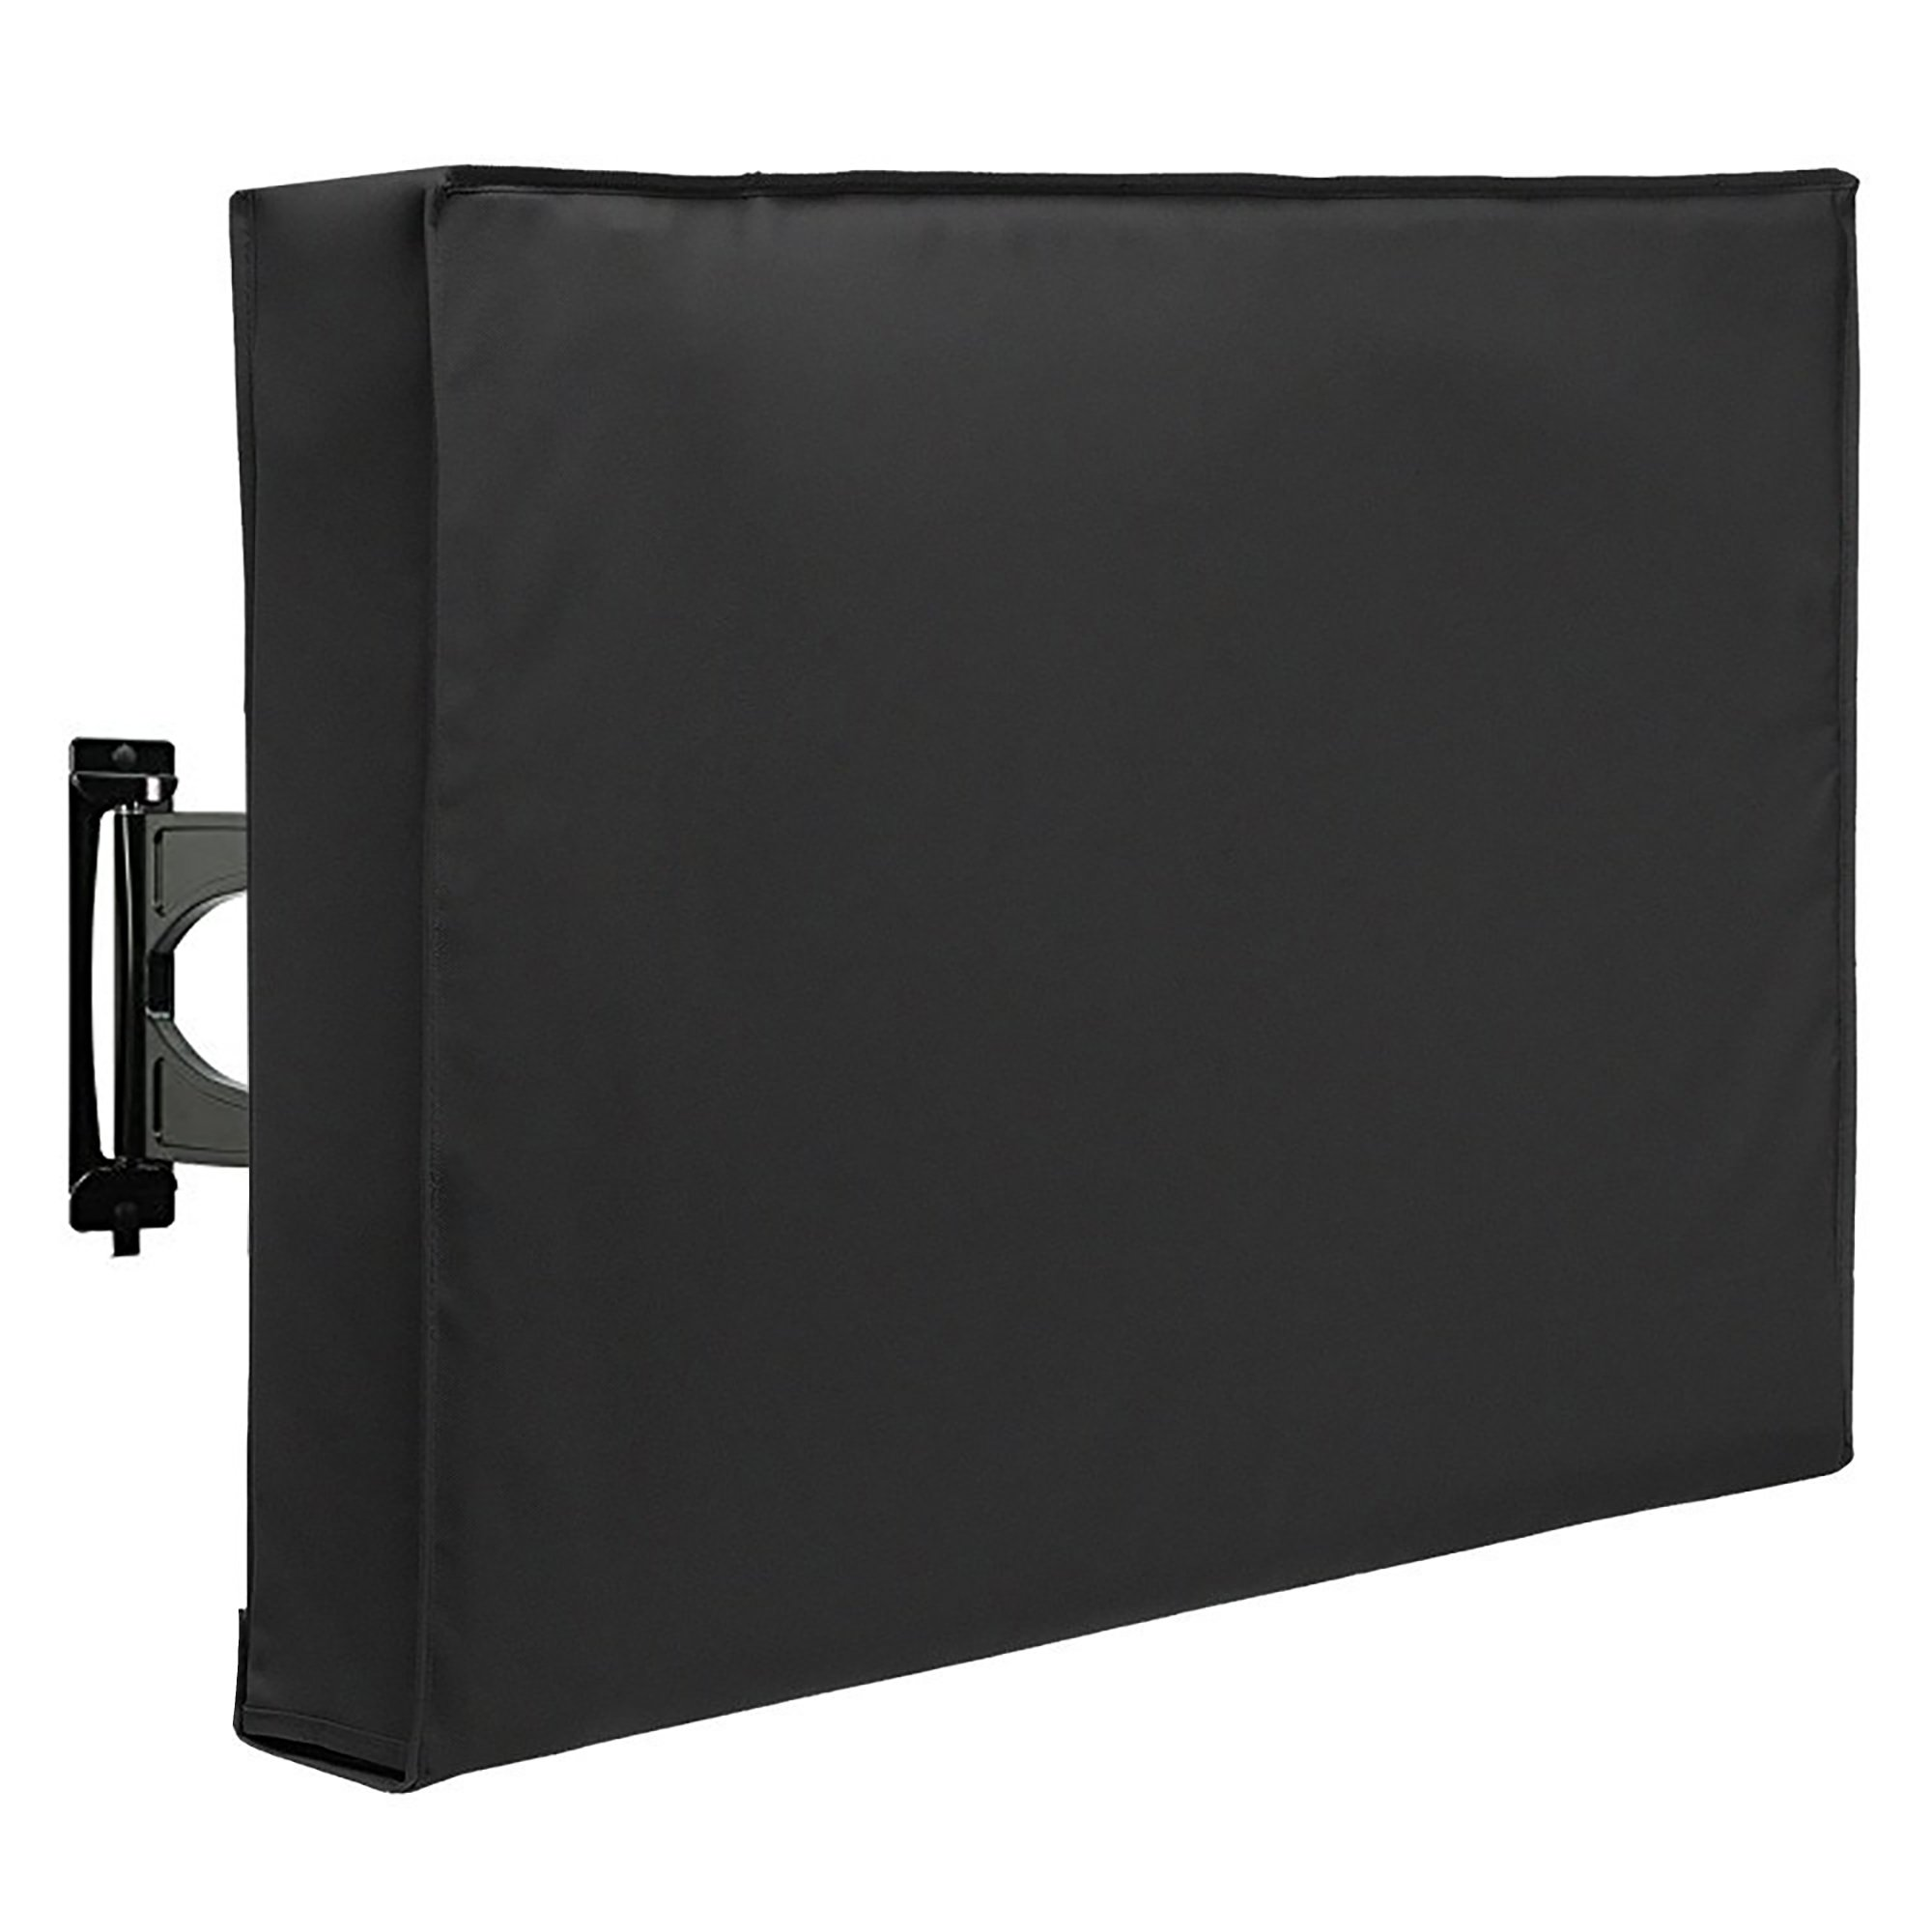 SunPatio Outdoor TV Cover 30''-32'', TV Screen Protector, TV Enclosure Offers 360° Coverage with Bottom Cover, Waterproof and Dust-proof, Fade and UV Resistant, Black